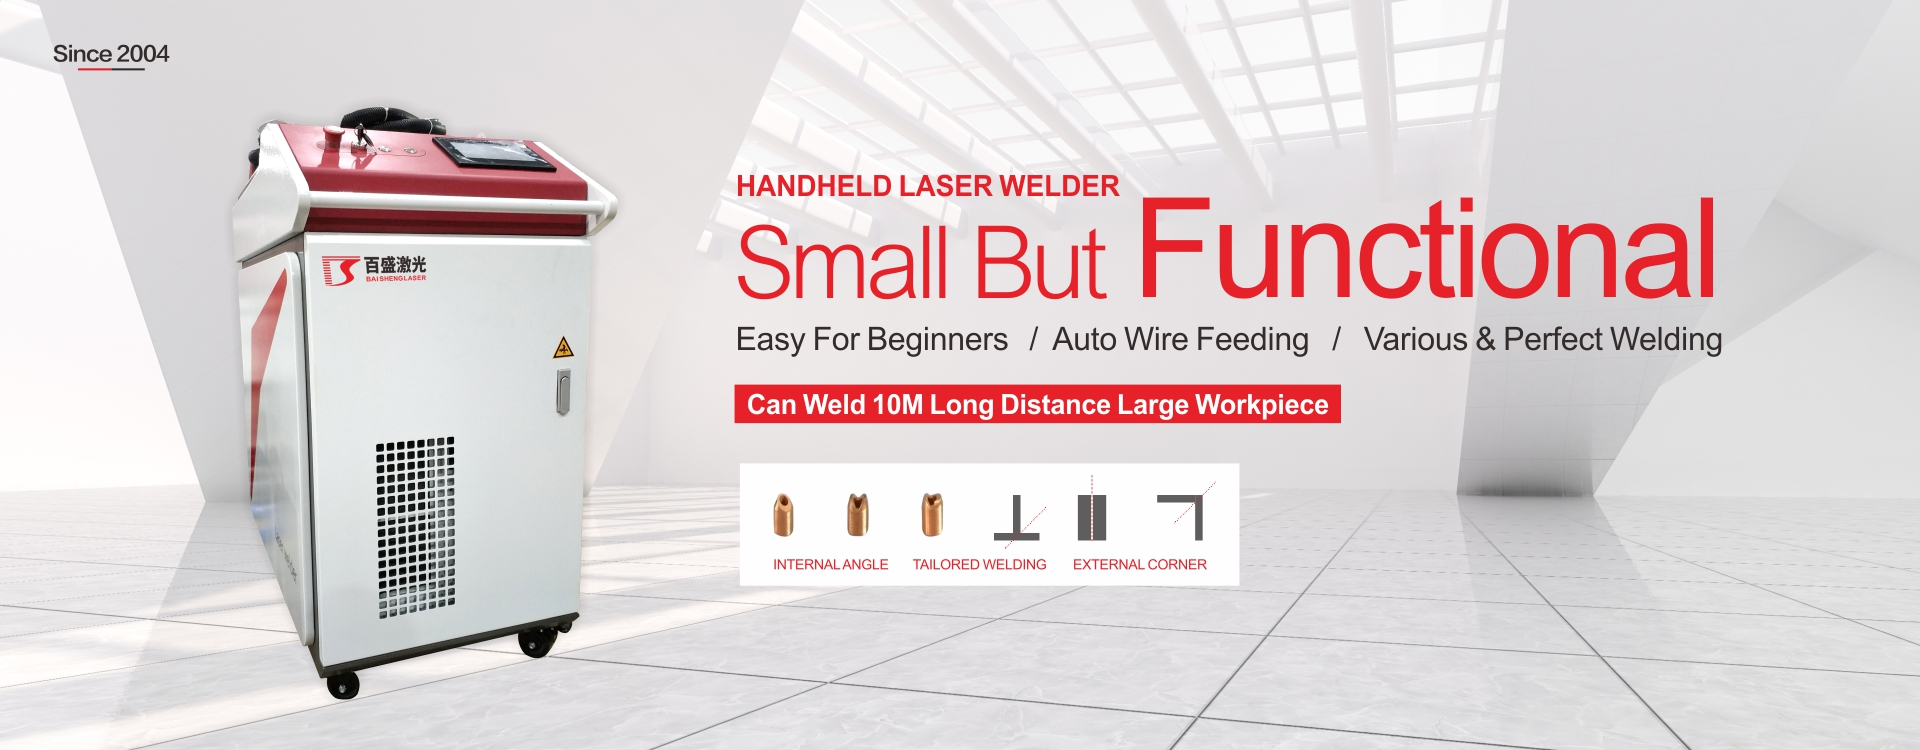 handheld laser welding machine with auto wire filling, weld stainless steel aluminum copper